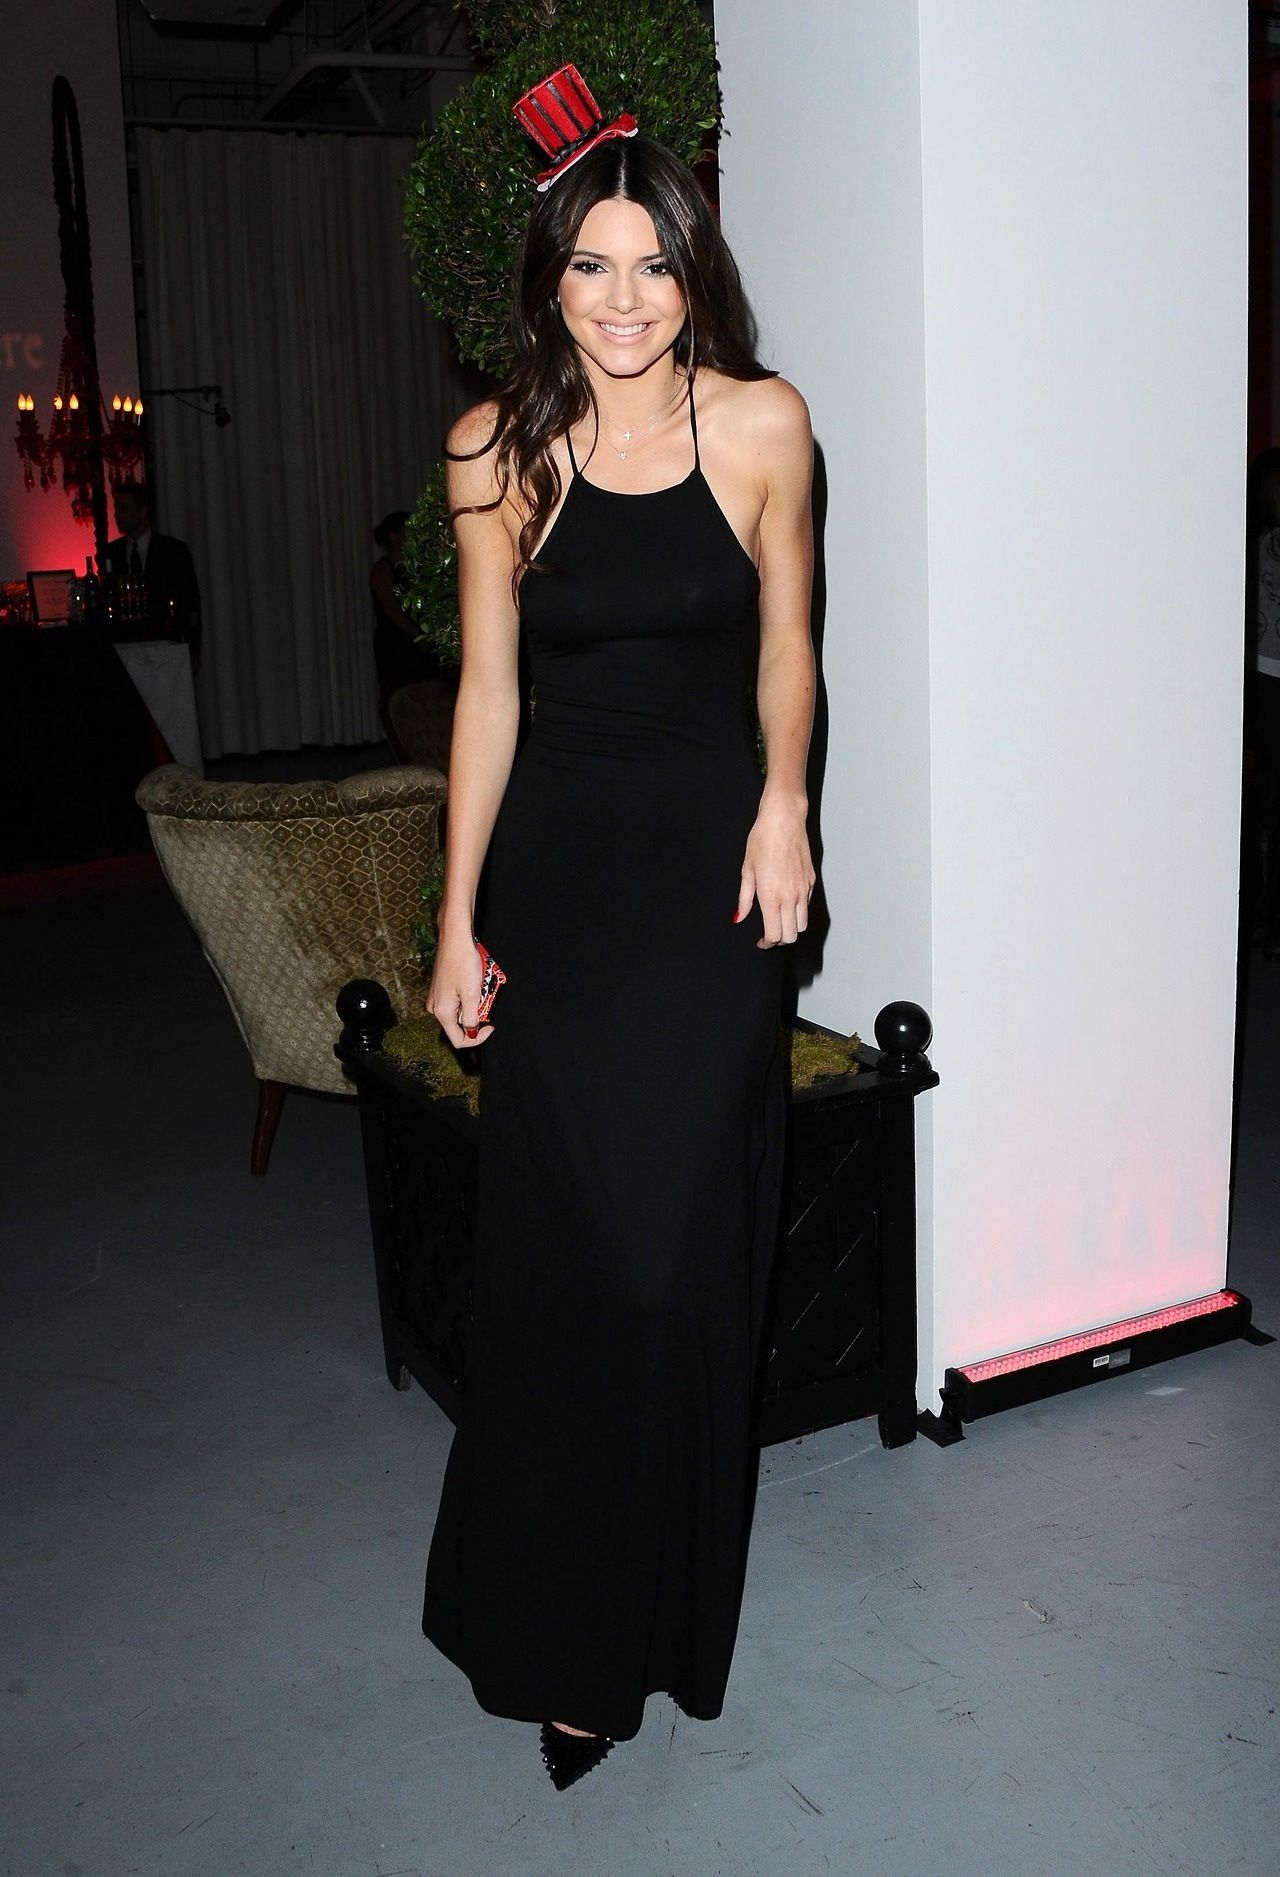 Kendall at Kylie's Sweet 16 birthday party {kendall